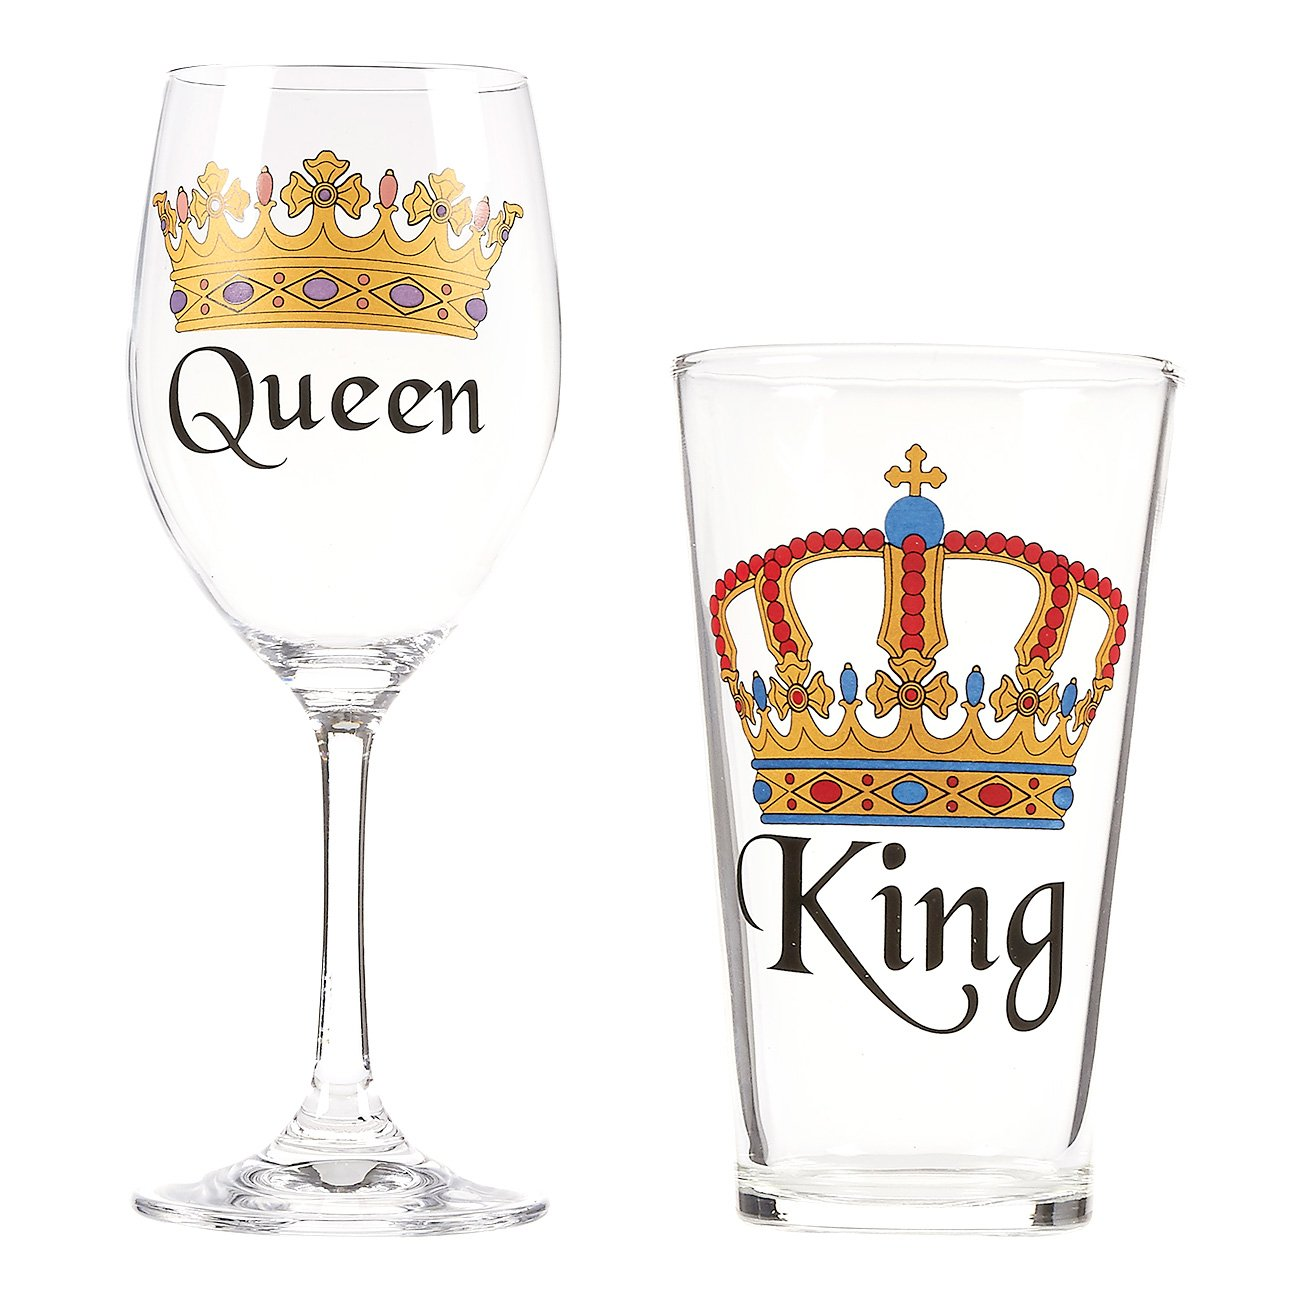 Beer and Wine Glass Set – Pair of Crown Royalty Drinking Glasses with King and Queen Print for Mr. & Mrs. and Couples, Ideal Novelty Gift for Wedding, Engagement, Anniversary, Housewarming Present